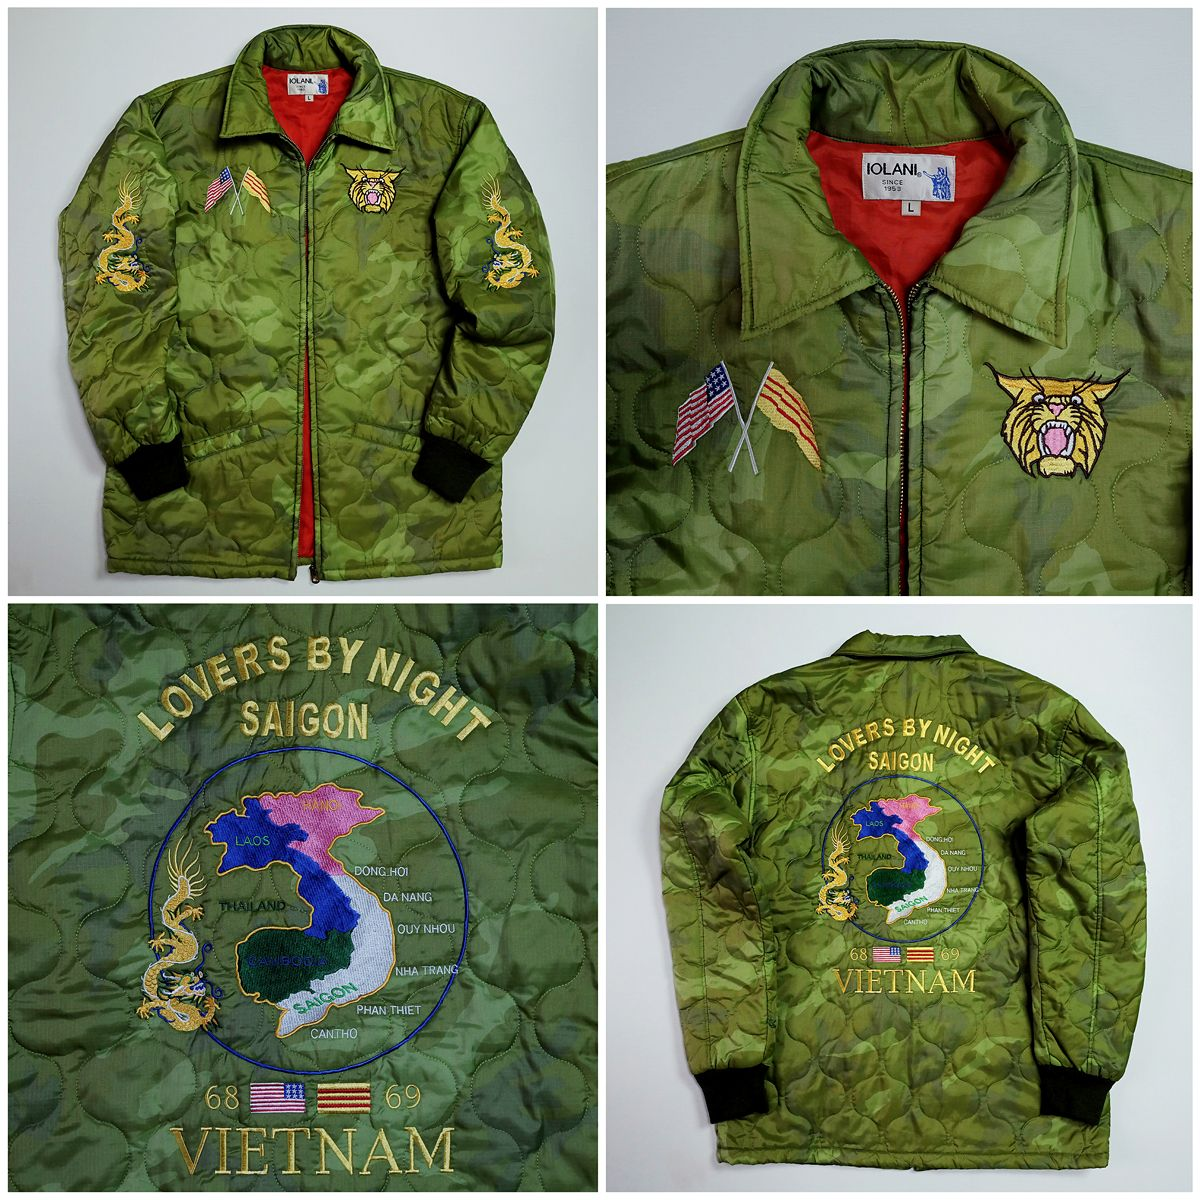 ecc08fbd6 Vintage IOLANI Japanese Japan VIETNAM Lover's by Night Tiger Tora Camo  Camouflage Military Tattoo Art Embroidery Embroidered Bomber Sukajan  Souvenir Jacket ...